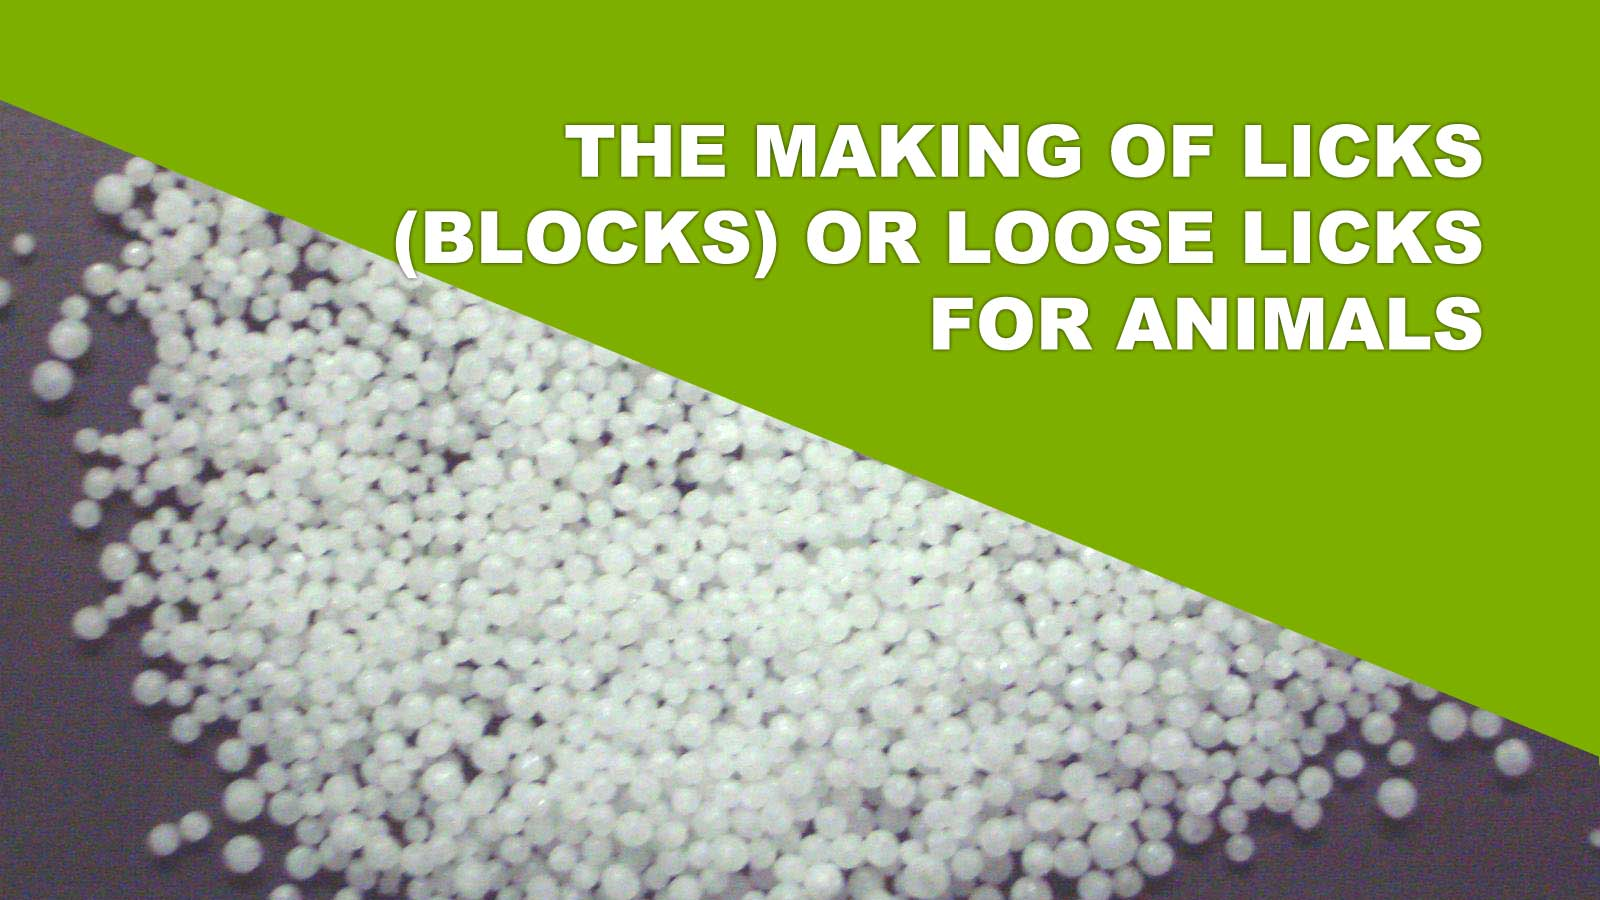 The Making Of Licks (Blocks) Or Loose Licks For Animals